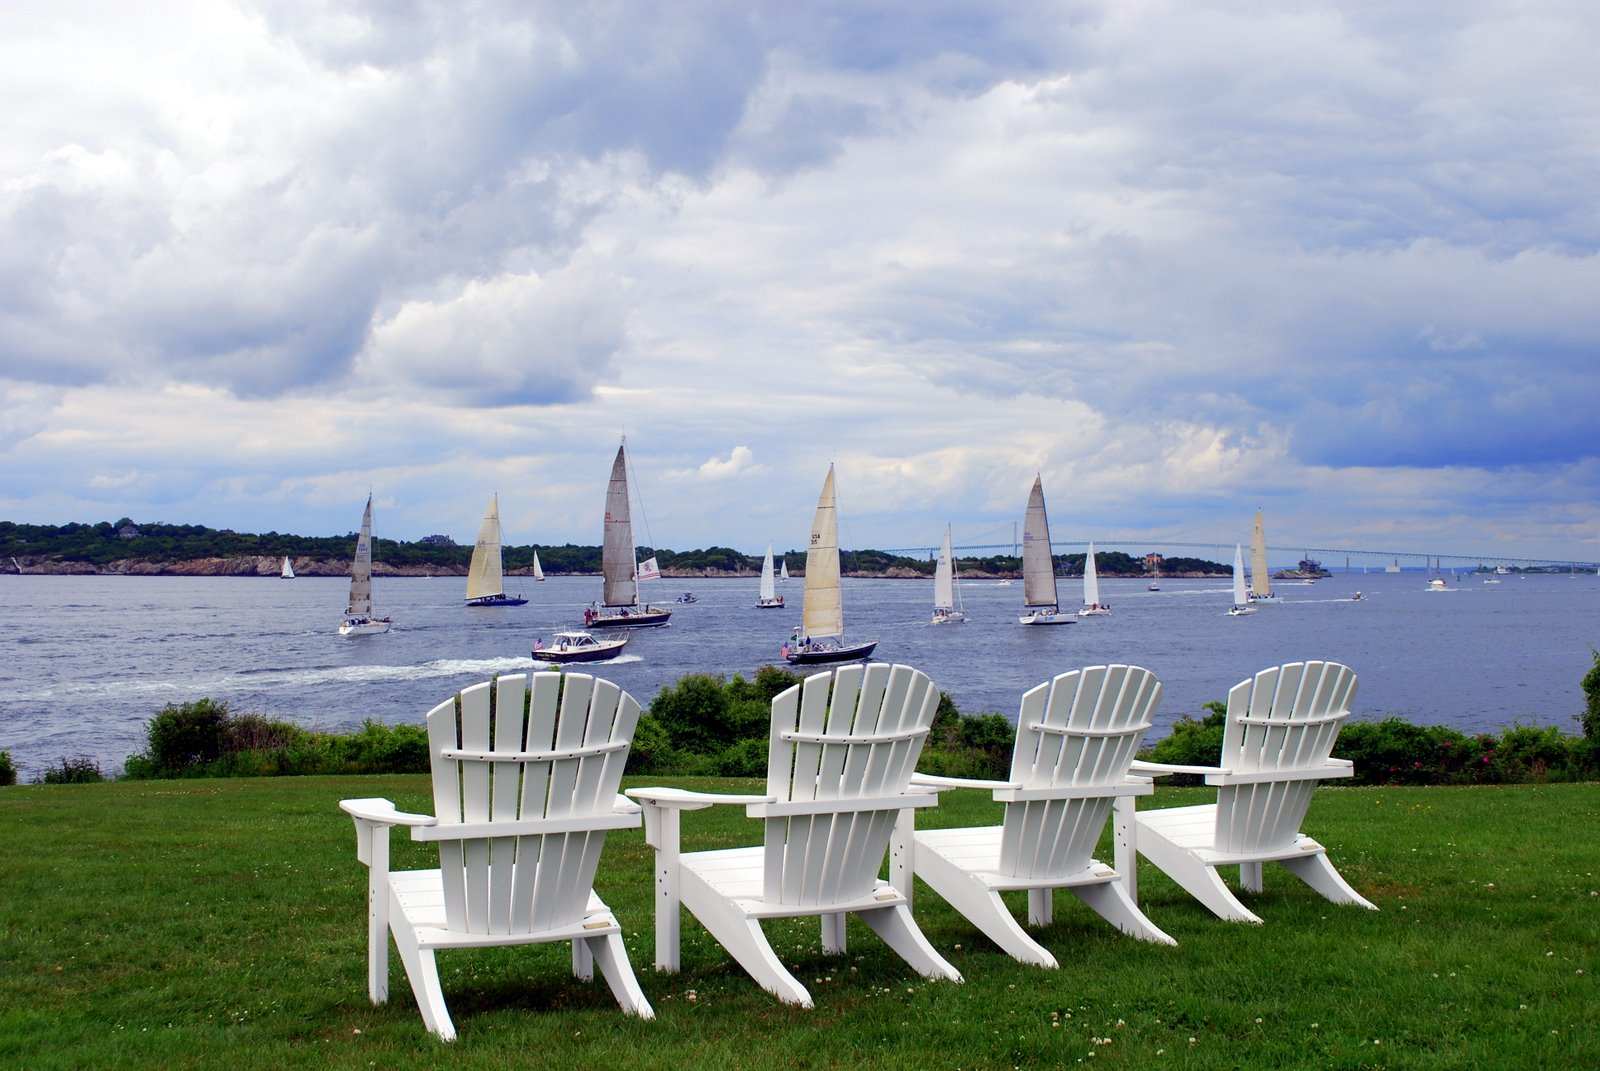 More information about things to do in Newport RI